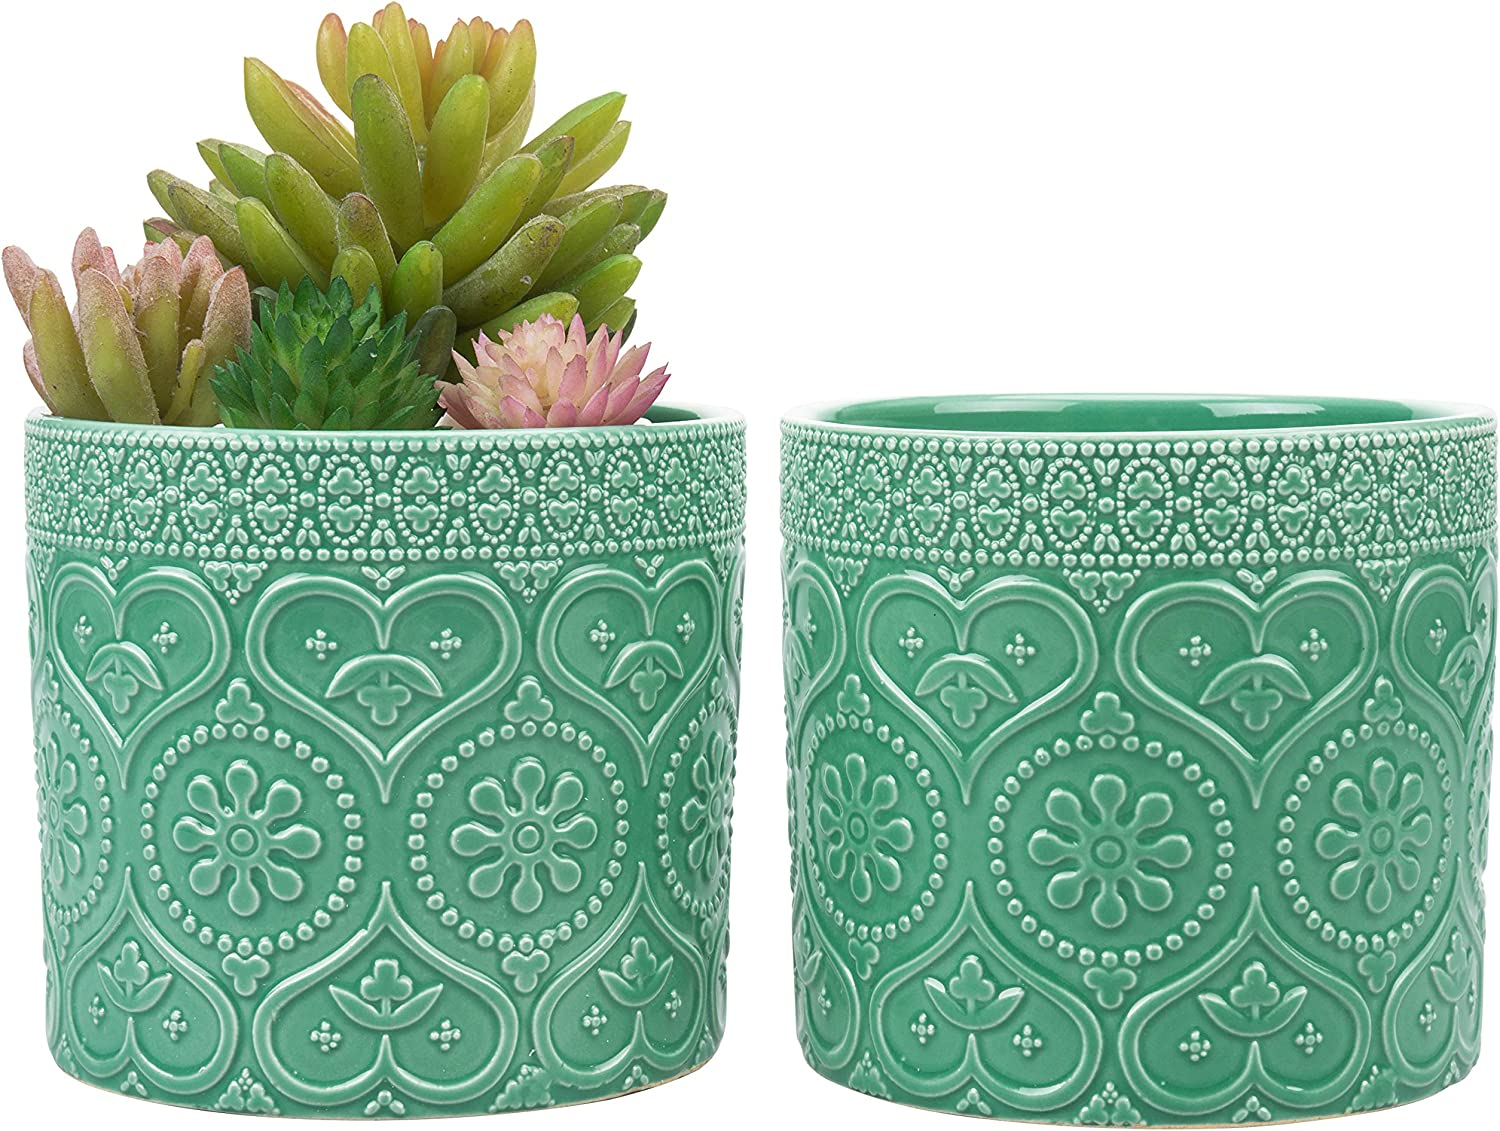 MyGift 4-Inch Aqua Green Ceramic Floral Embossed Succulent Planter Pots, Set of 2